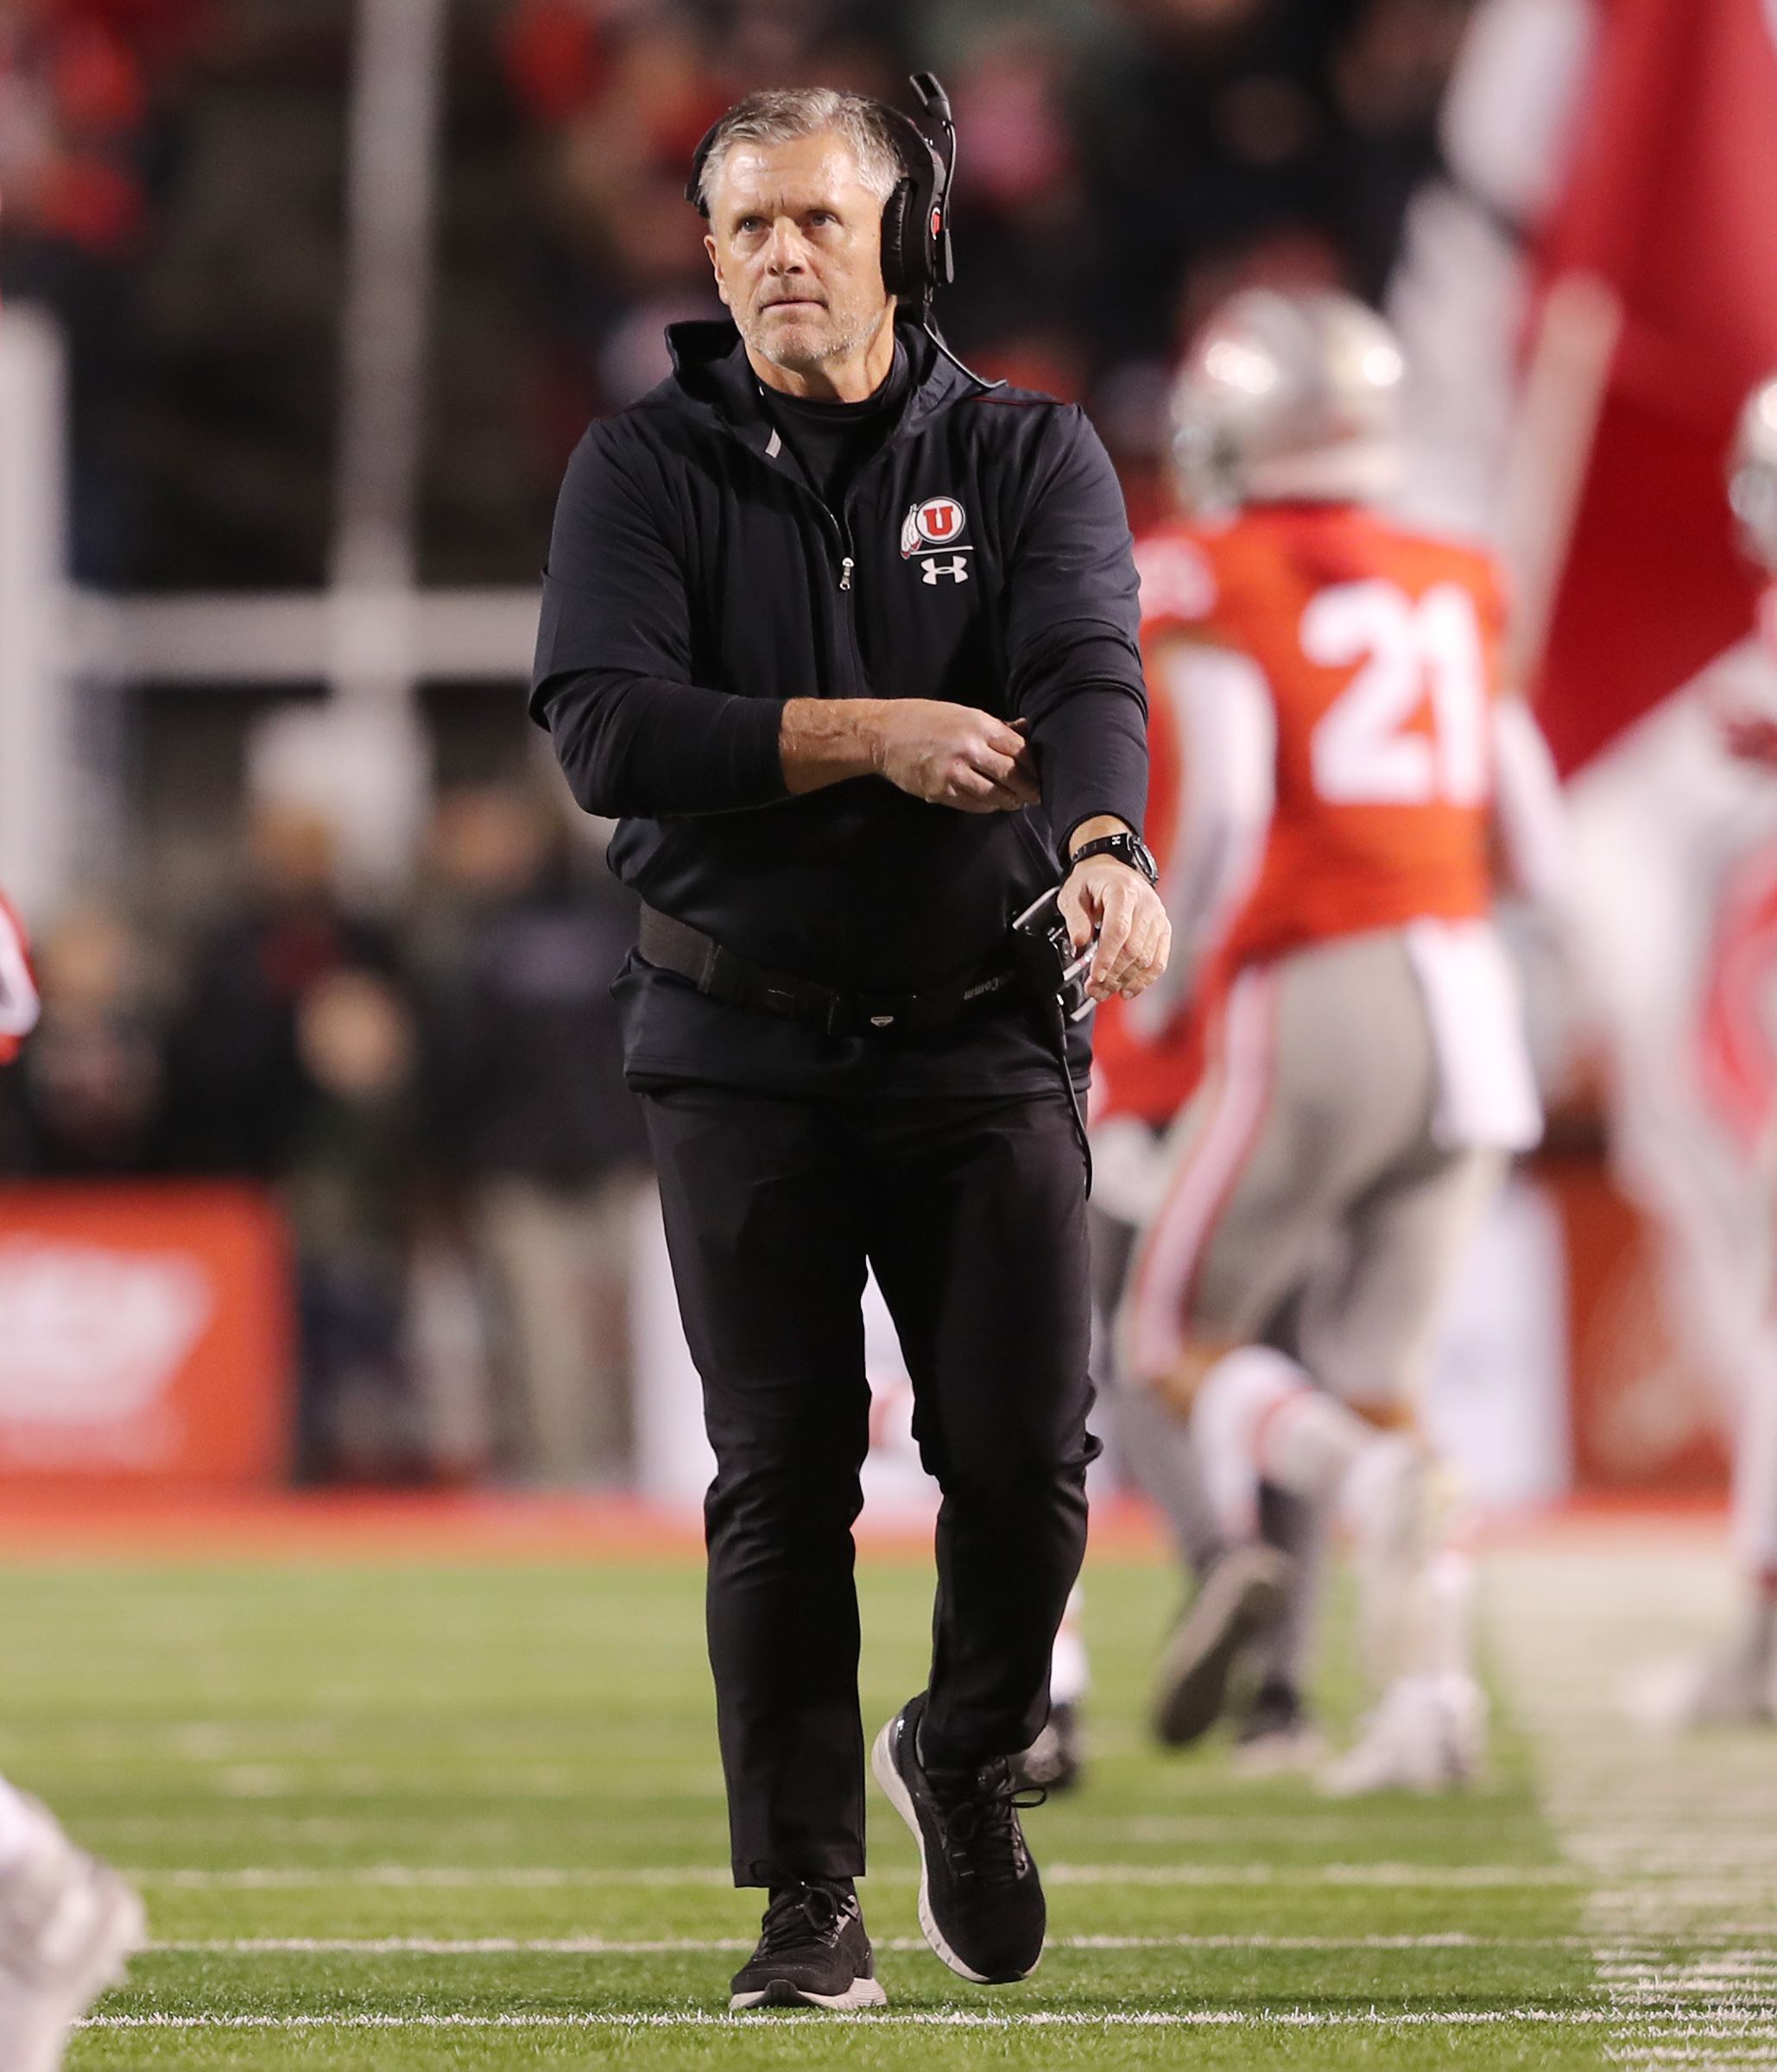 Utah Utes head coach Kyle Whittingham walks the sidelines after a Utah score as Utah and UCLA play a college football game in Salt Lake City at Rice-Eccles Stadium on Saturday, Nov. 16, 2019.